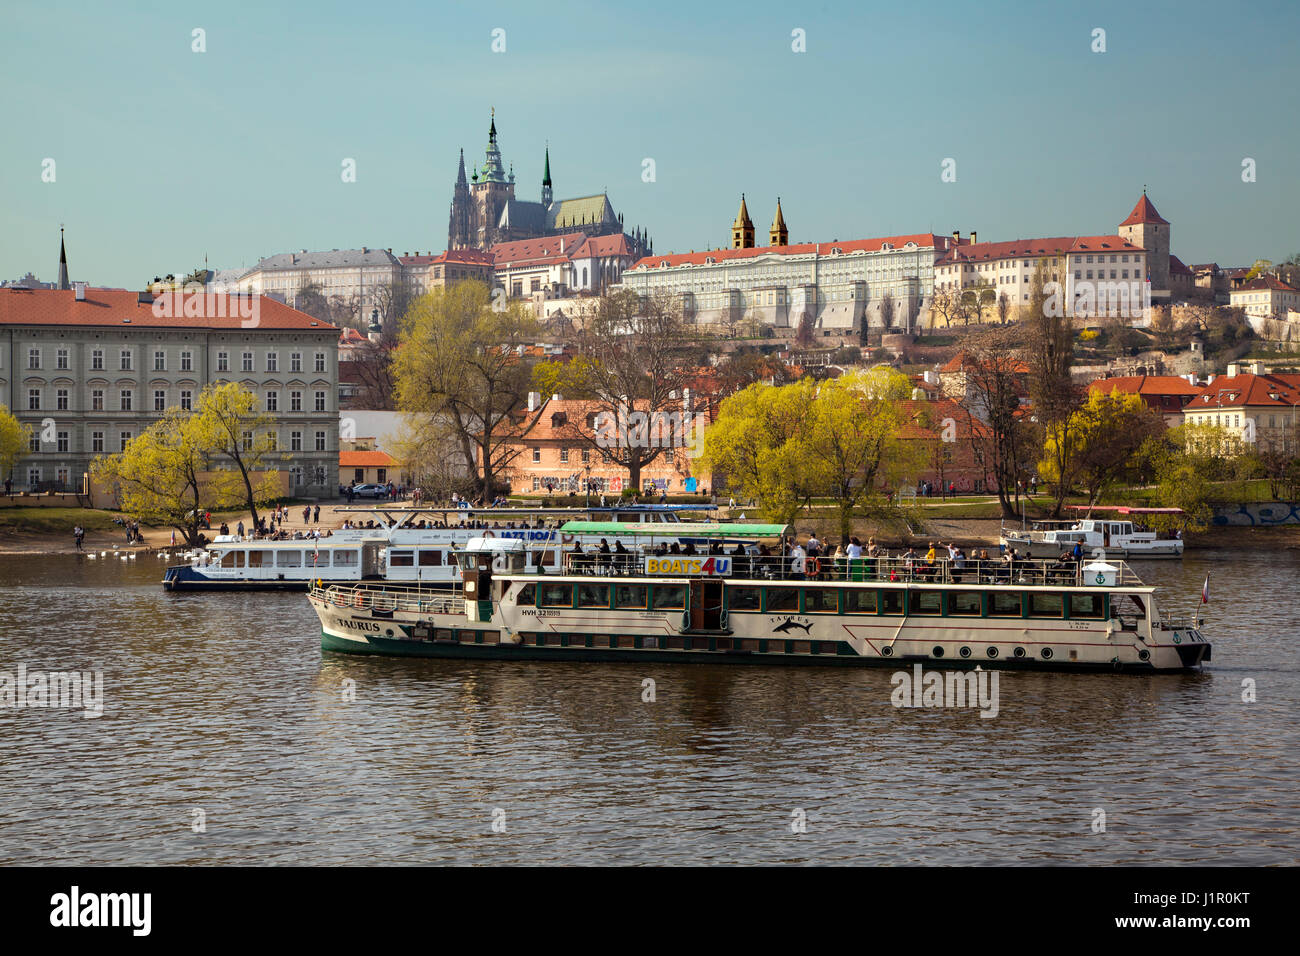 View across the river Vltava towards Prague Castle showing a boat doing sightseeing trips in springtime - Stock Image